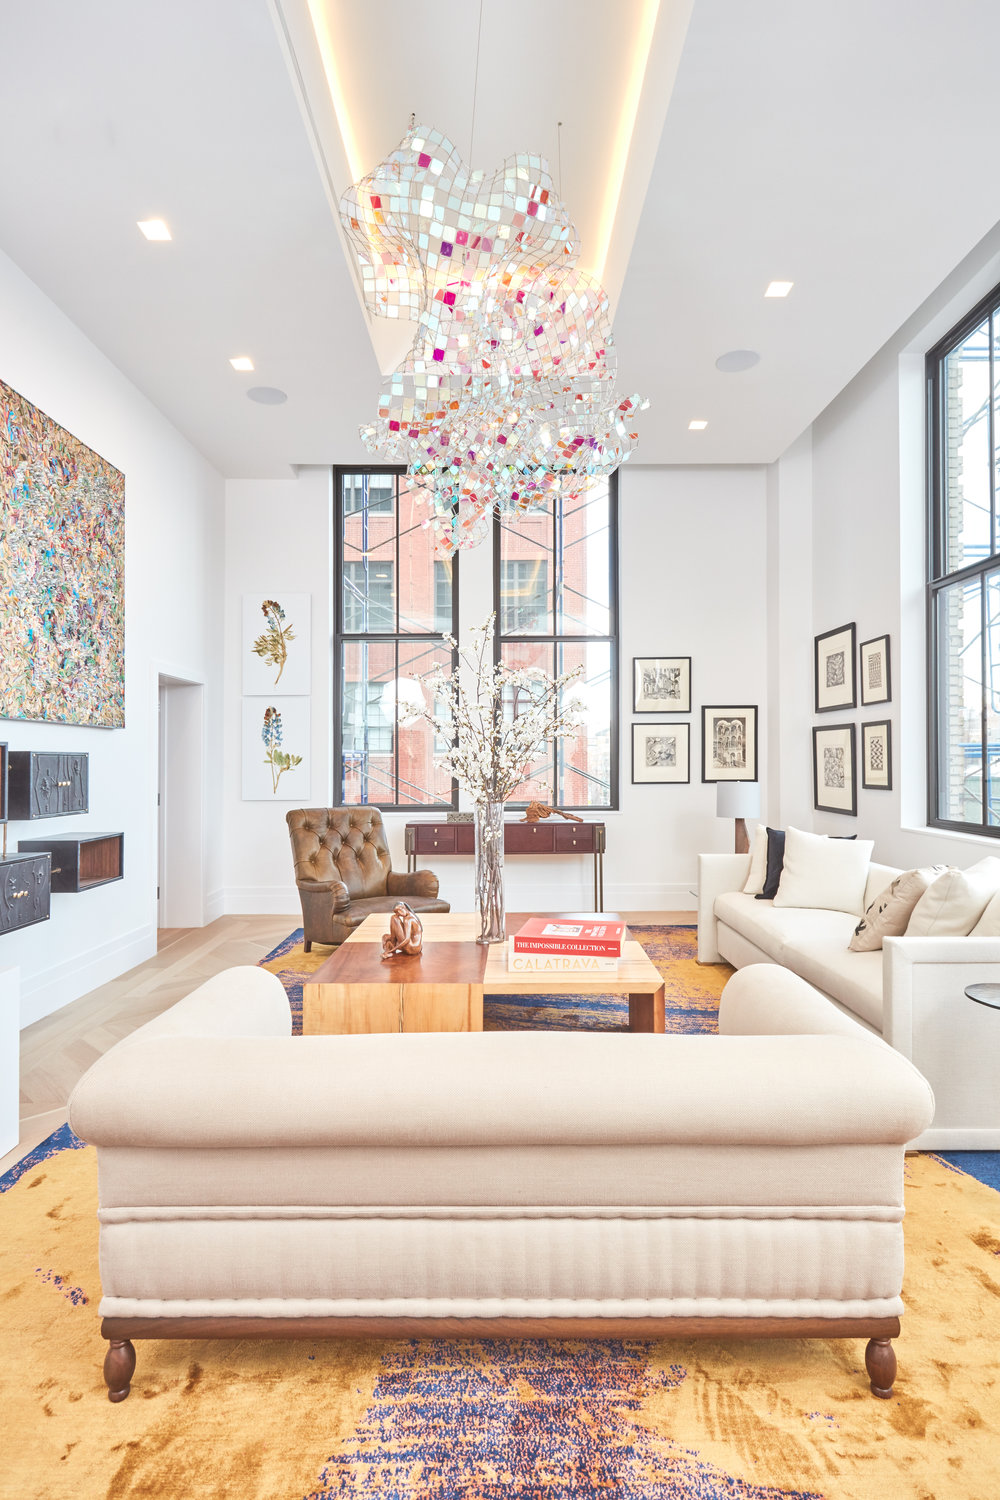 ArtfulLiving_WestVillage_17.jpg